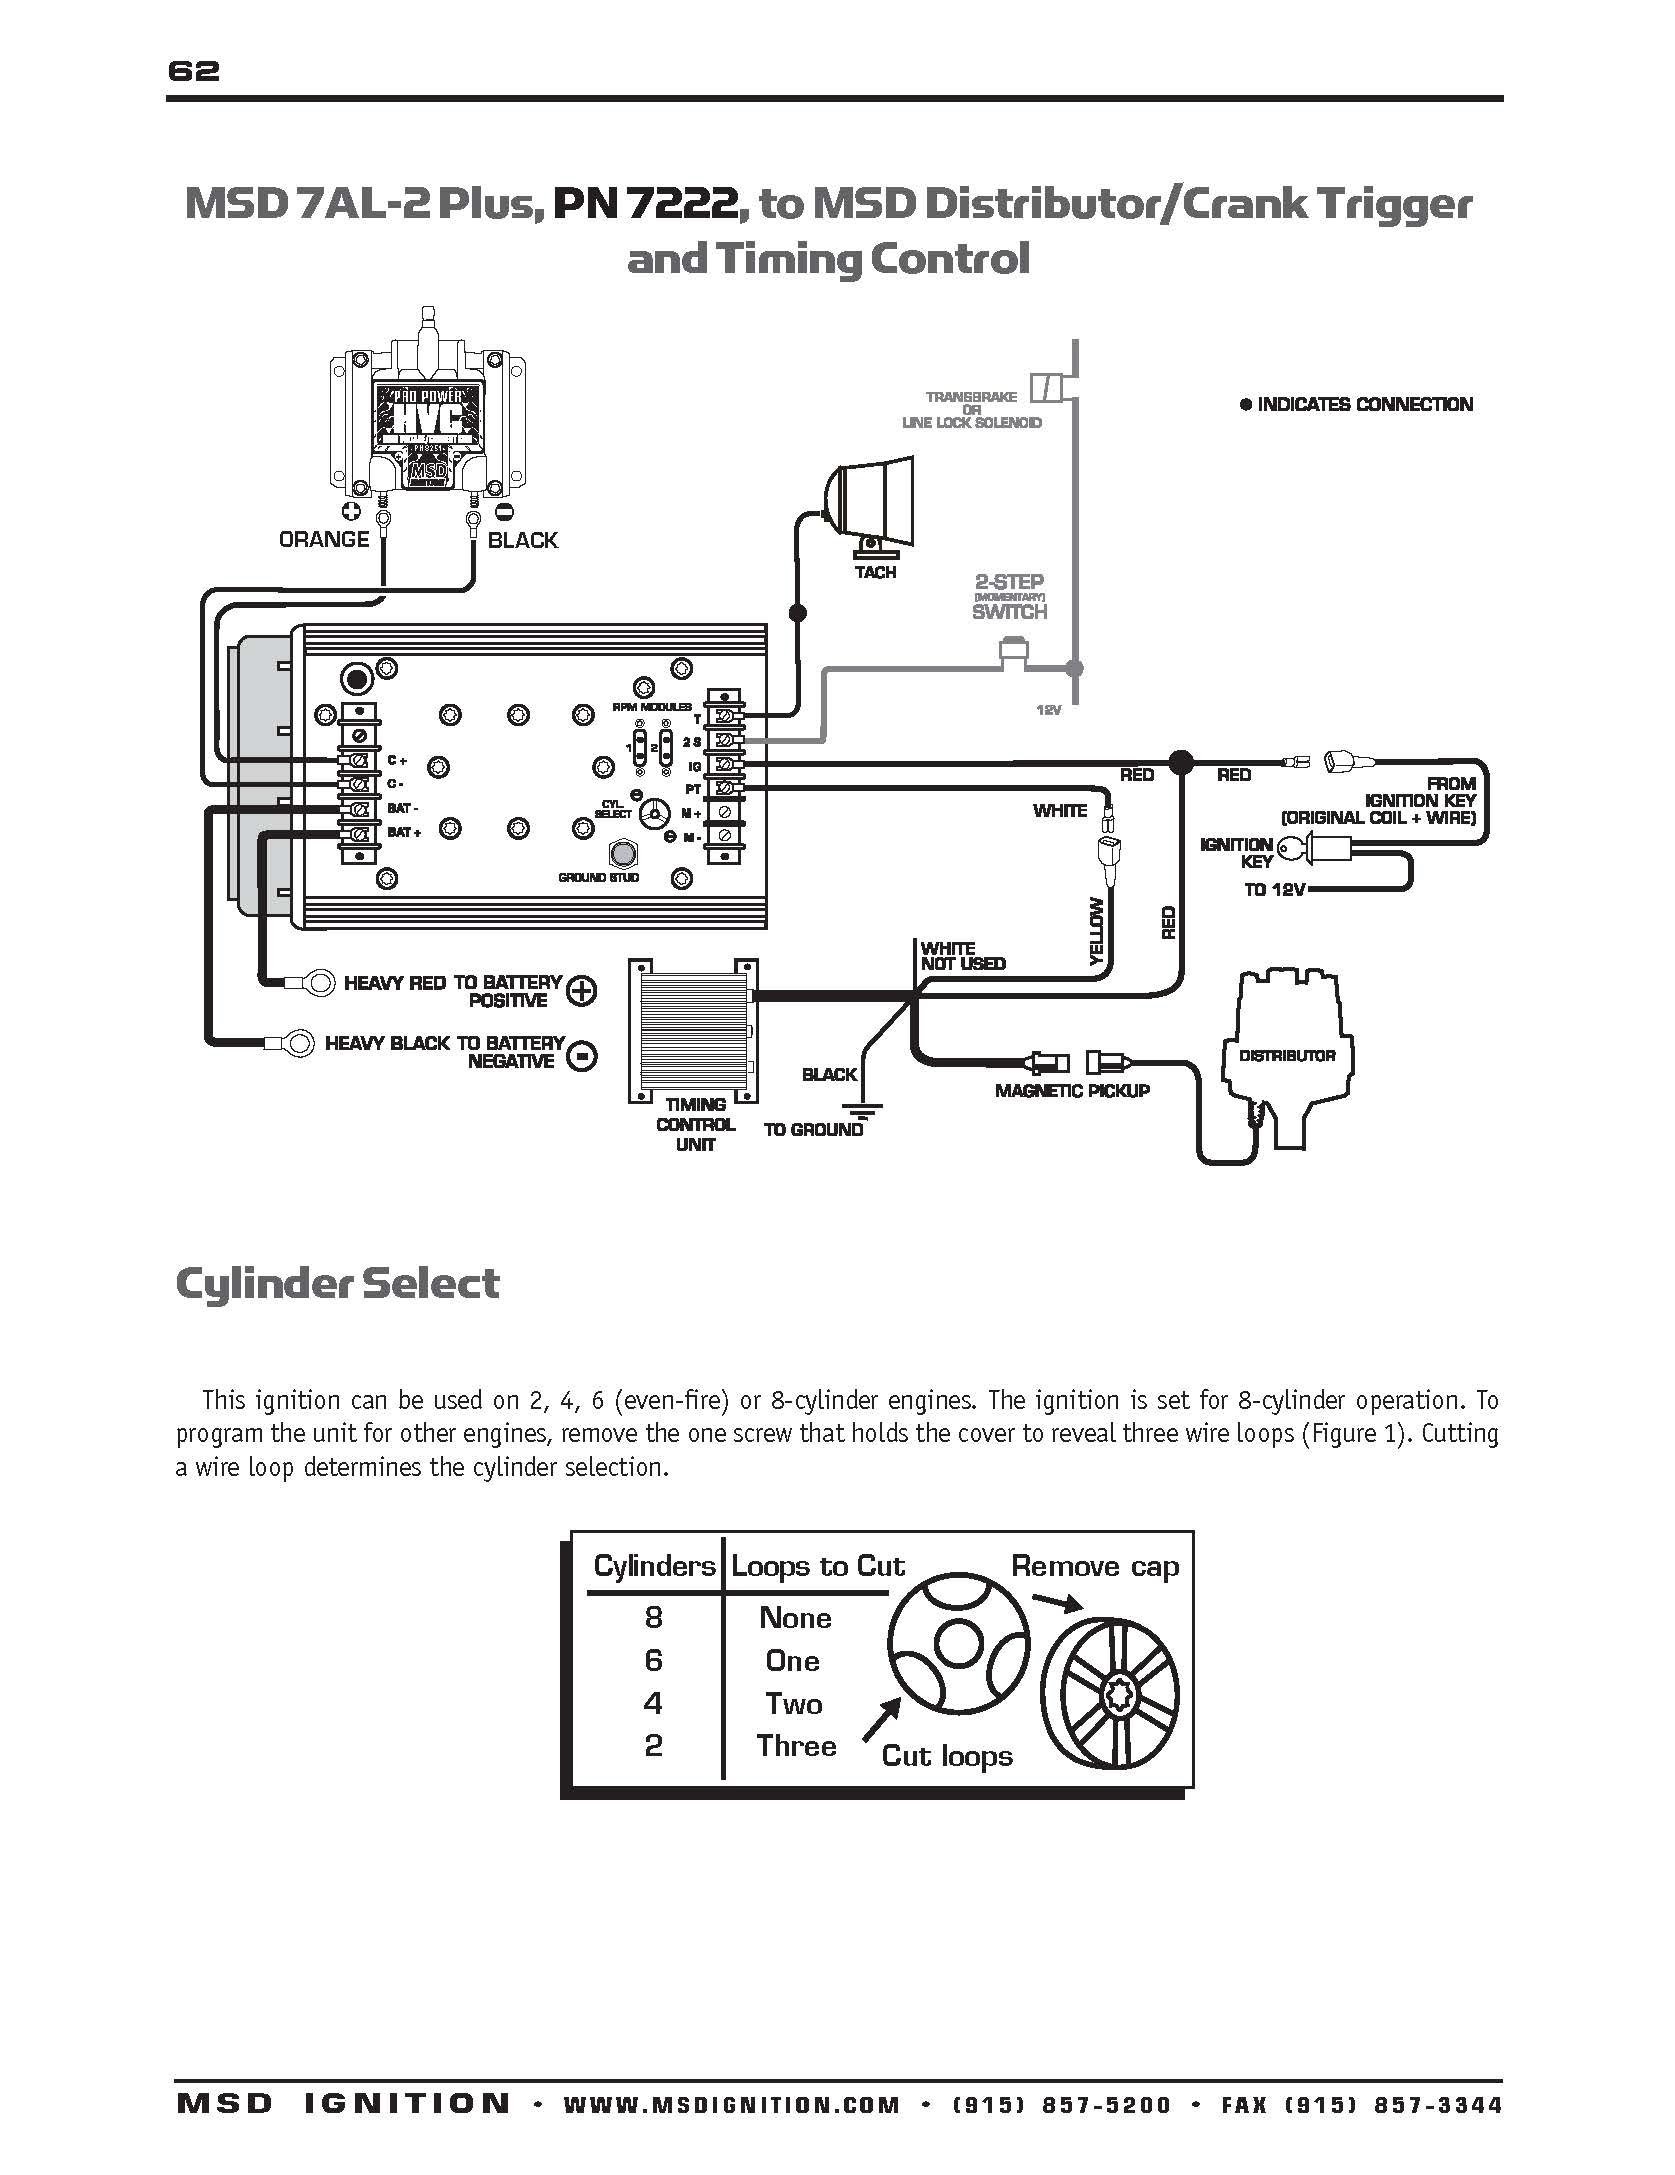 Ford Ignition Control Module Wiring Diagram New Msd Ignition Wiring